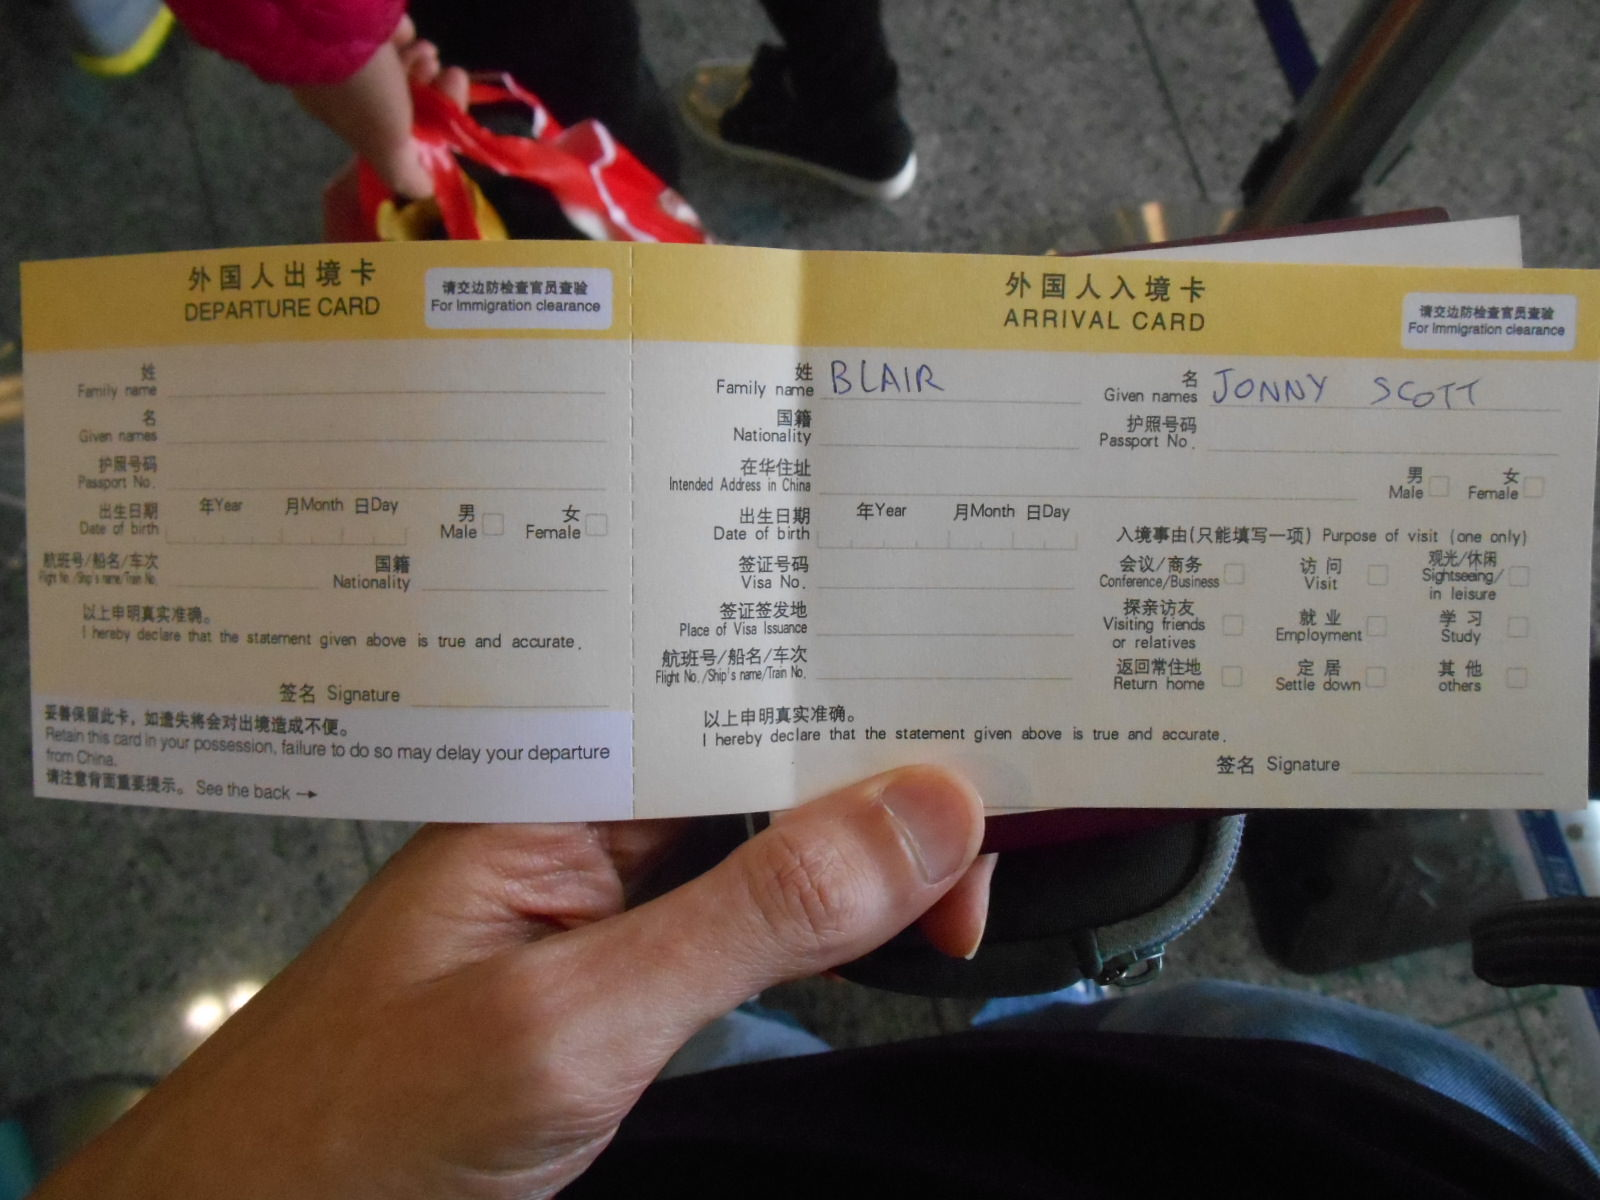 World Borders How To Get From Lok Ma Chau To Shenzhen Hong Kong To